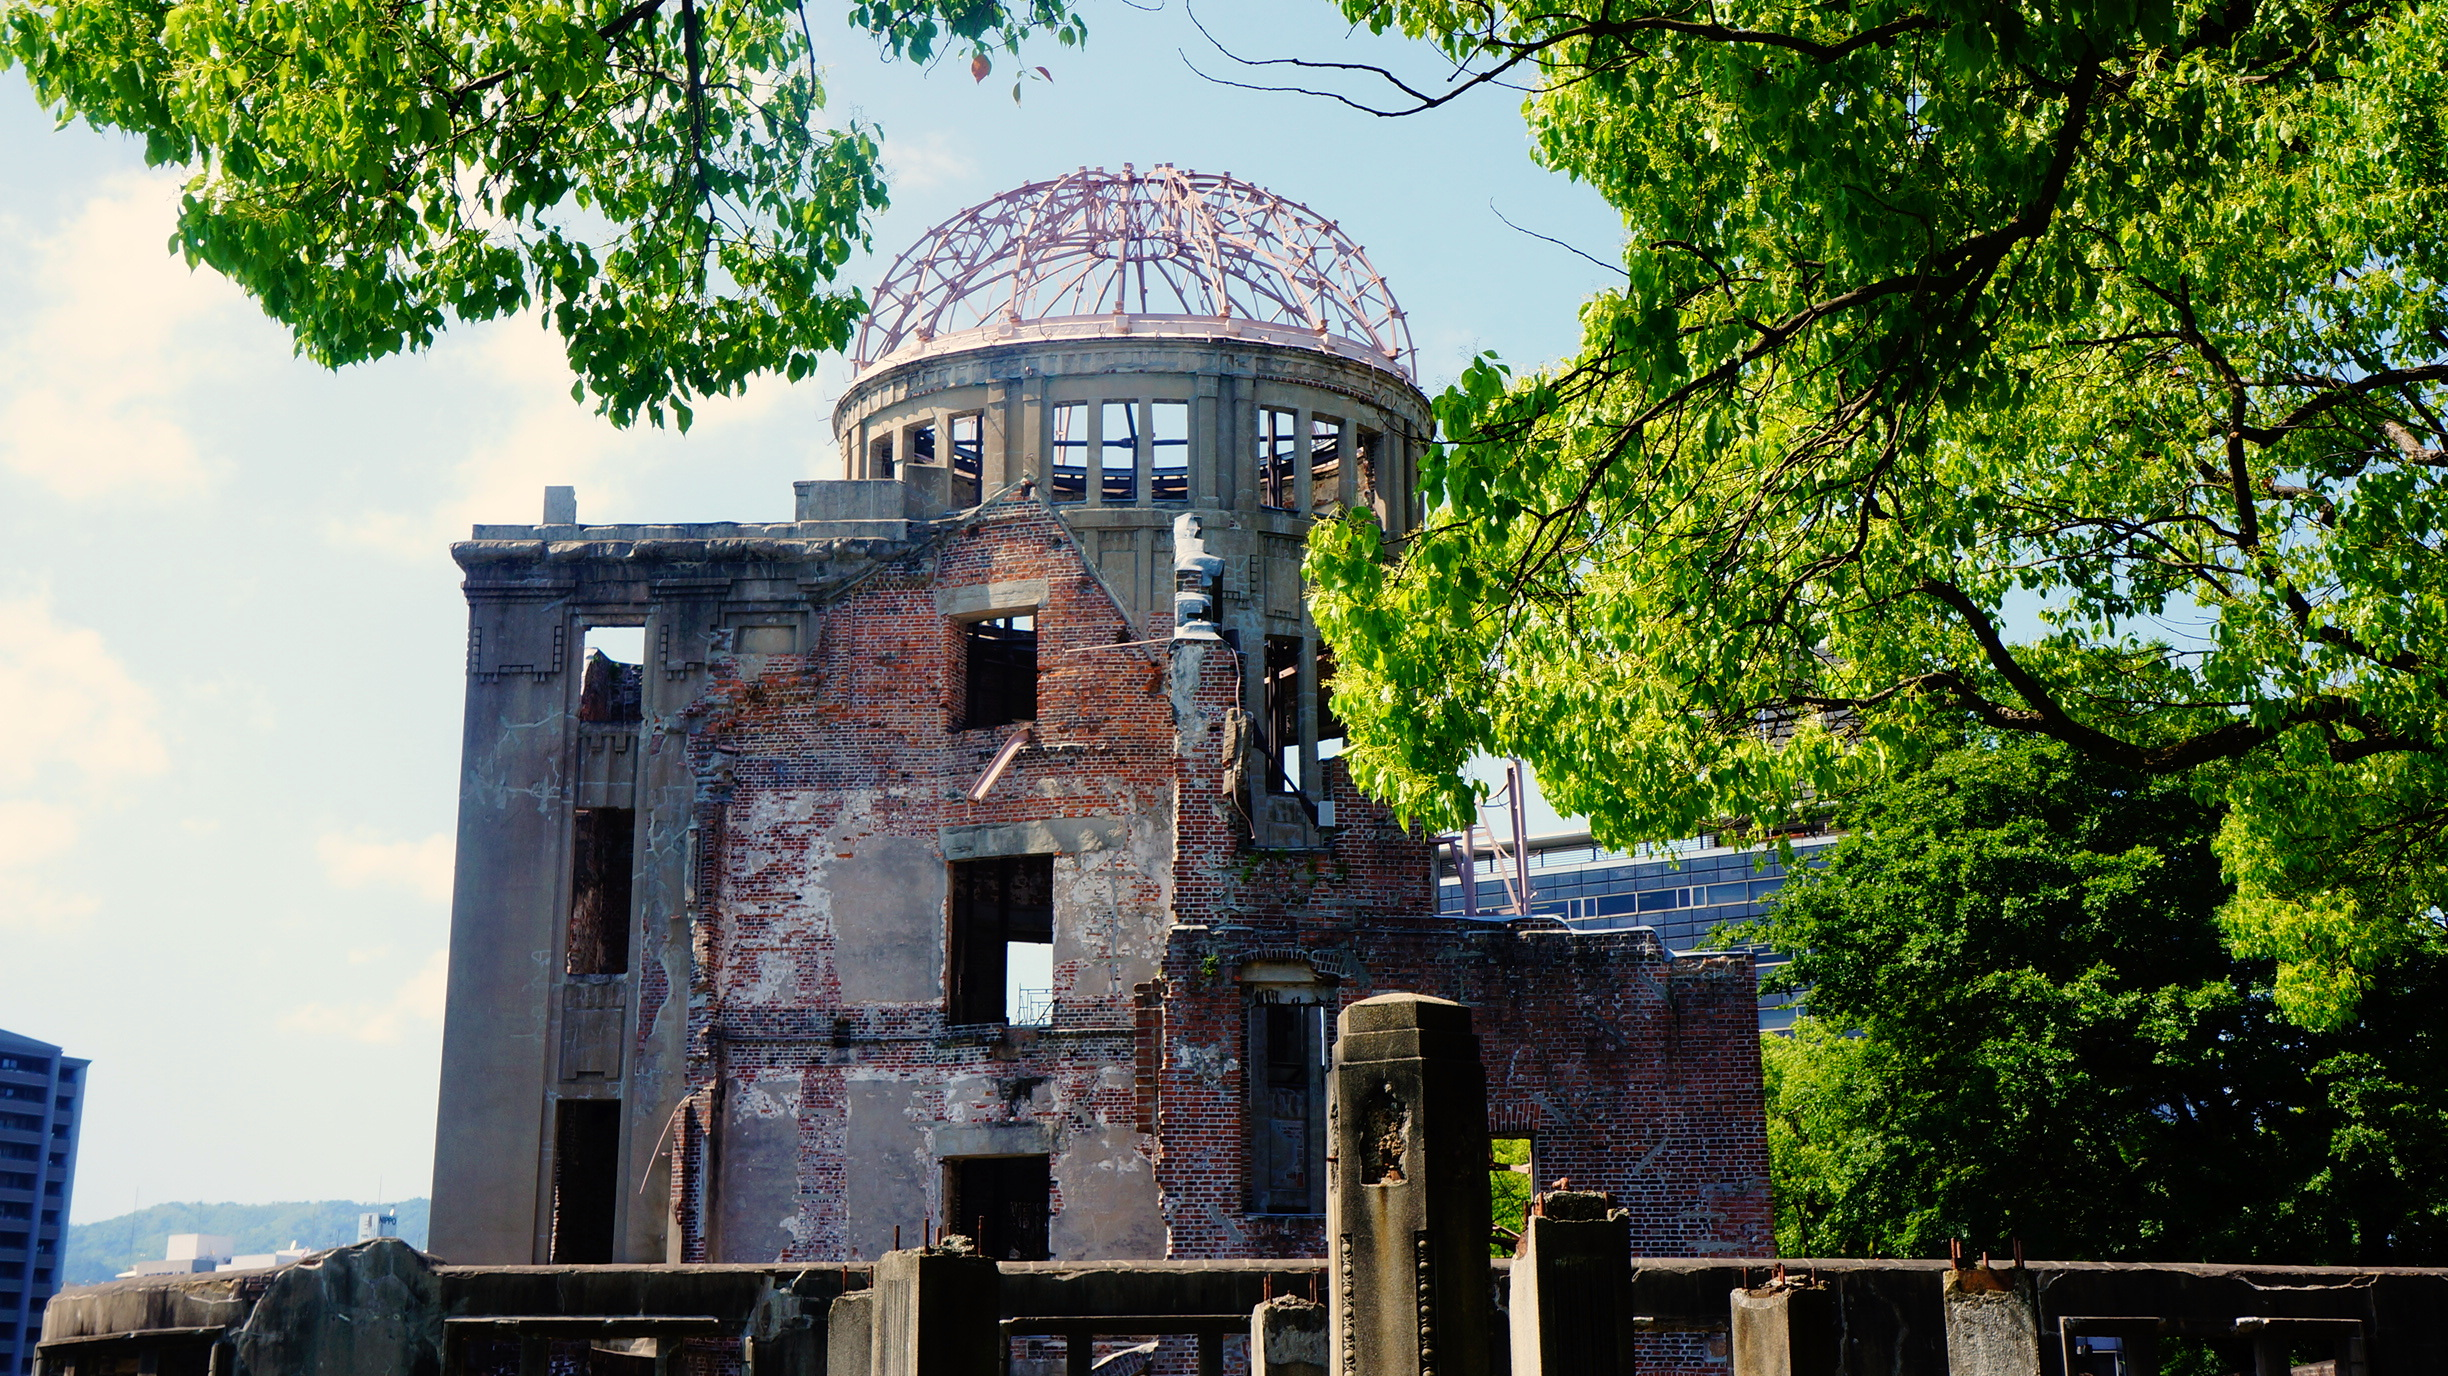 The remains of a Czech-designed exhibition hall, all that was left in the epicenter of the atomic bomb that dropped on Hiroshima on August 6, 1945, now stands as the Peace Memorial in downtown Hiroshima.